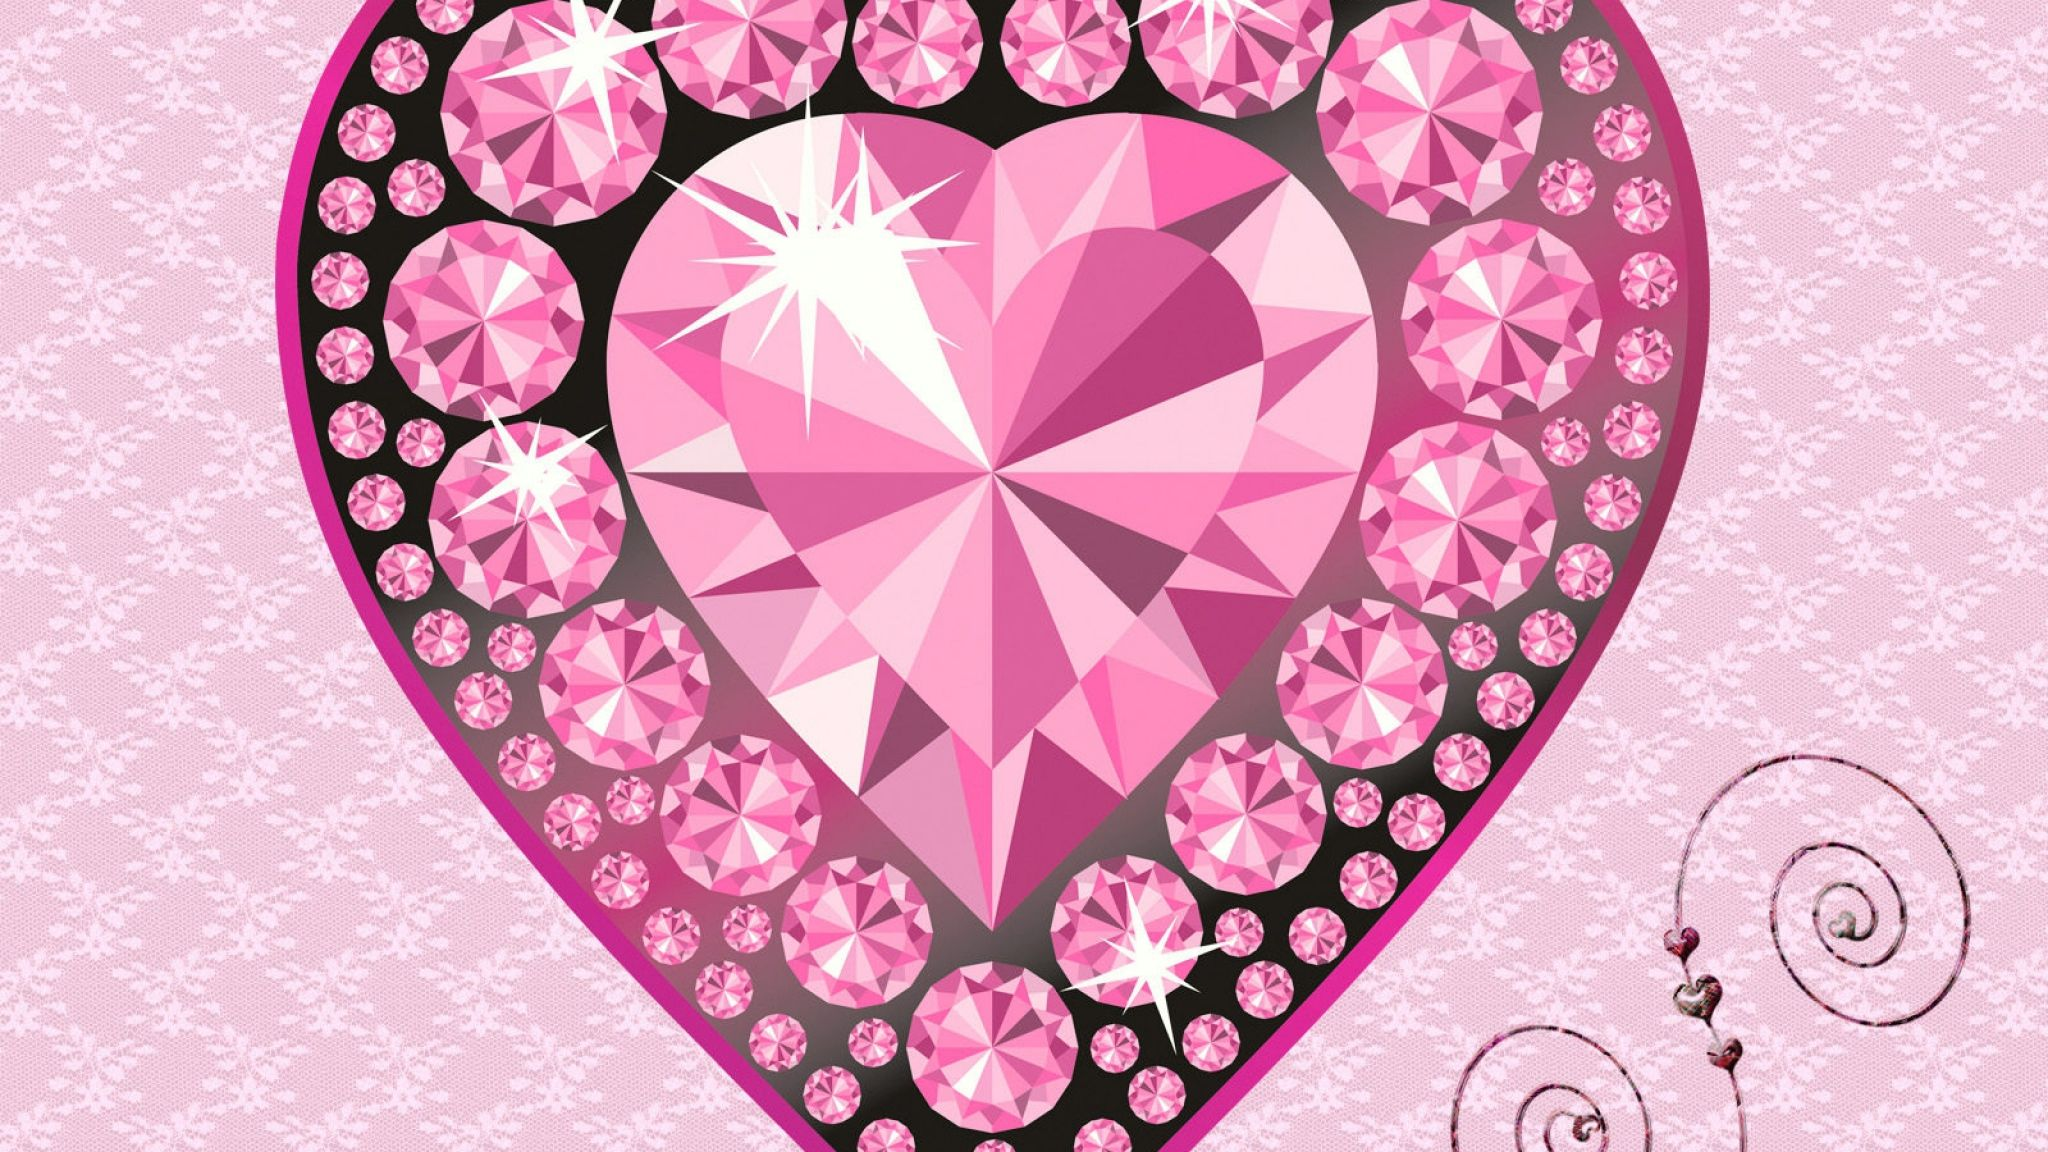 pink diamond wallpapers group hd wallpapers pinterest